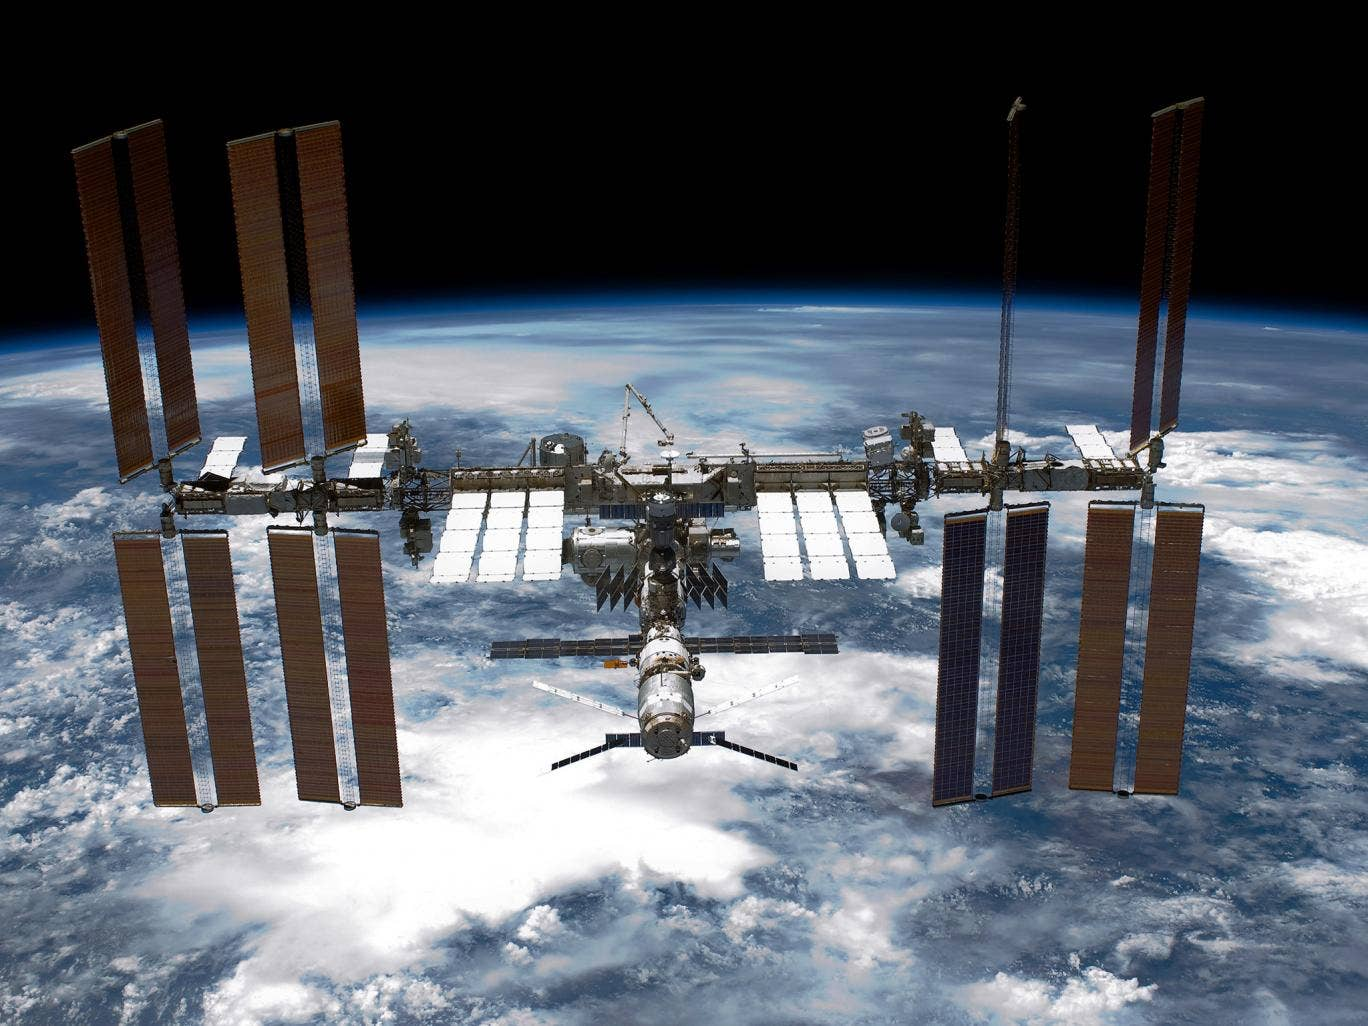 International Space Station: Celebrating 15 years of ...